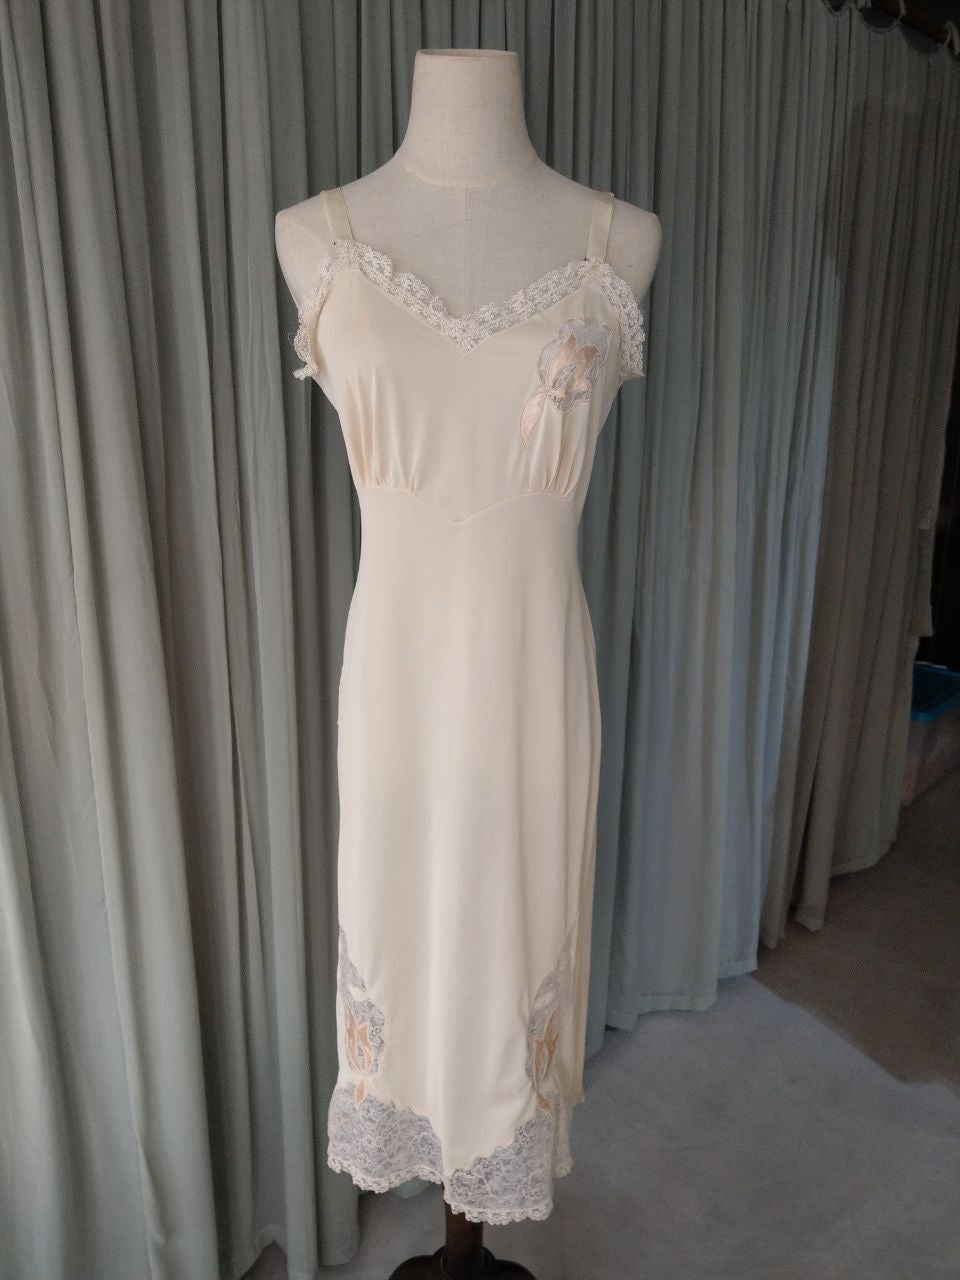 1960s nude lace slip with satin flowers